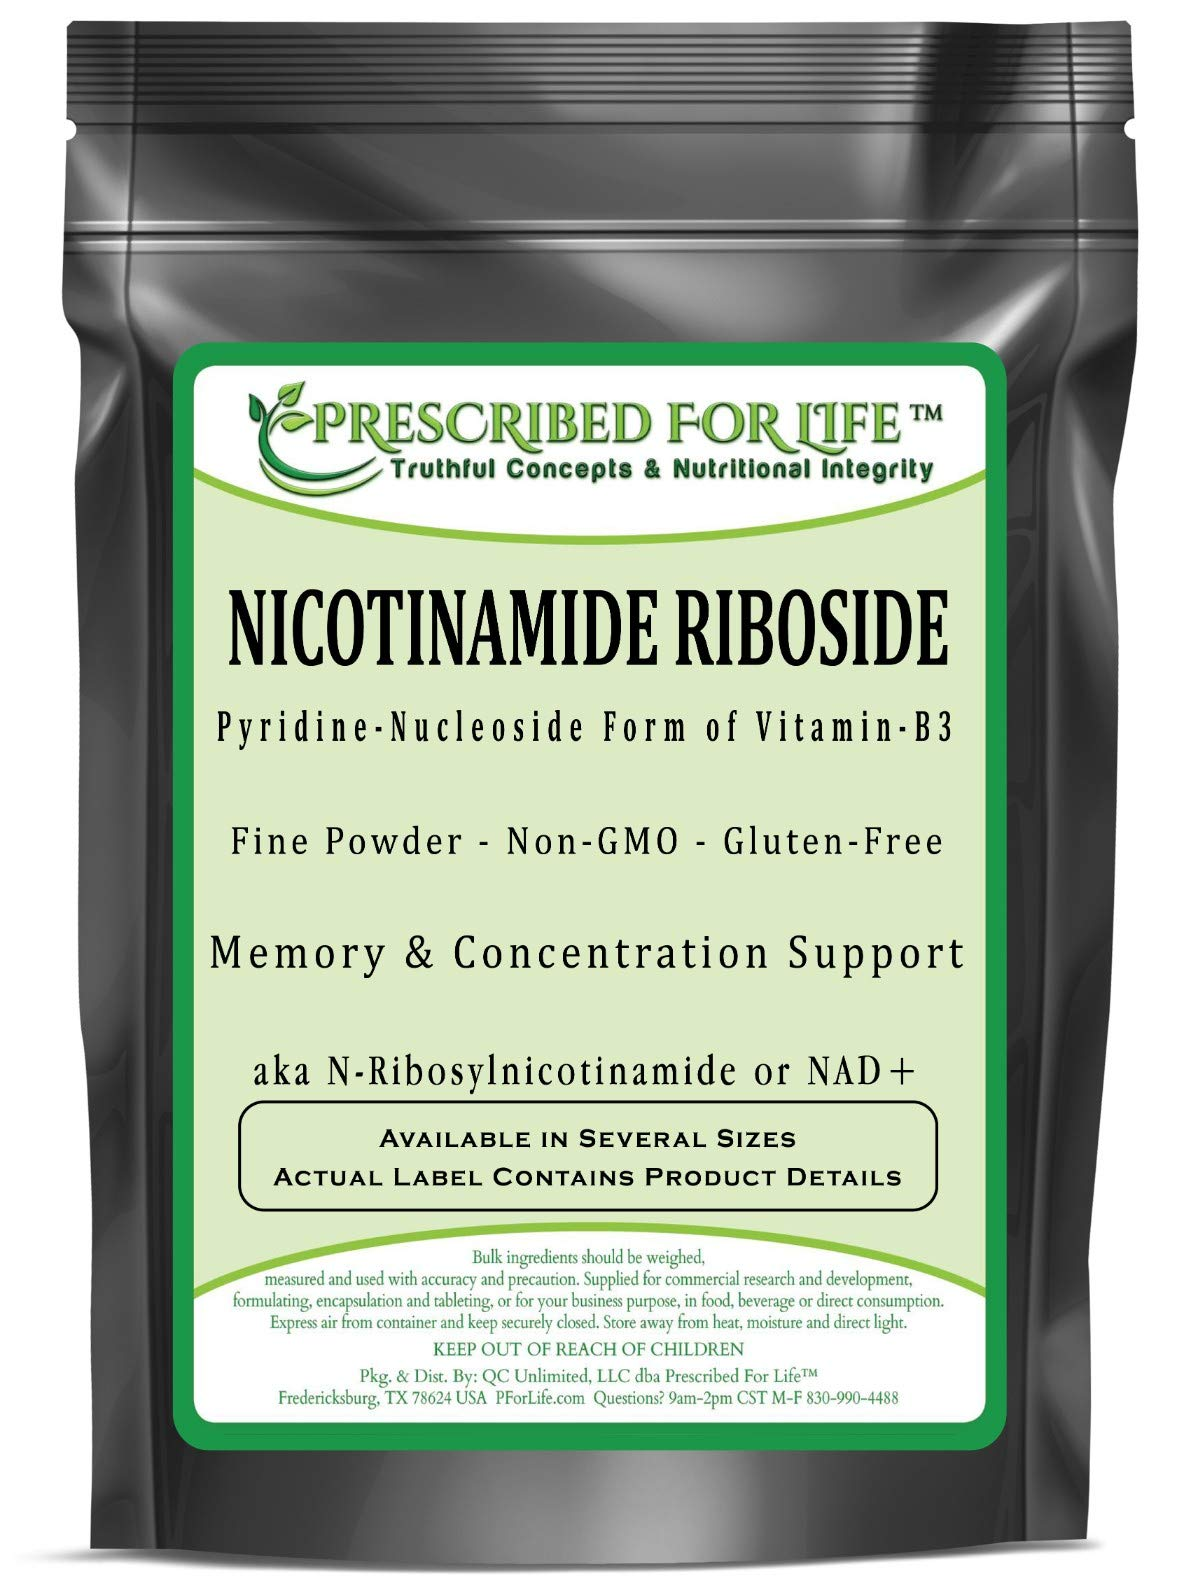 Nicotinamide Riboside - Pyridine-Nucleoside Form of Vitamin B3 Powder, 1 oz